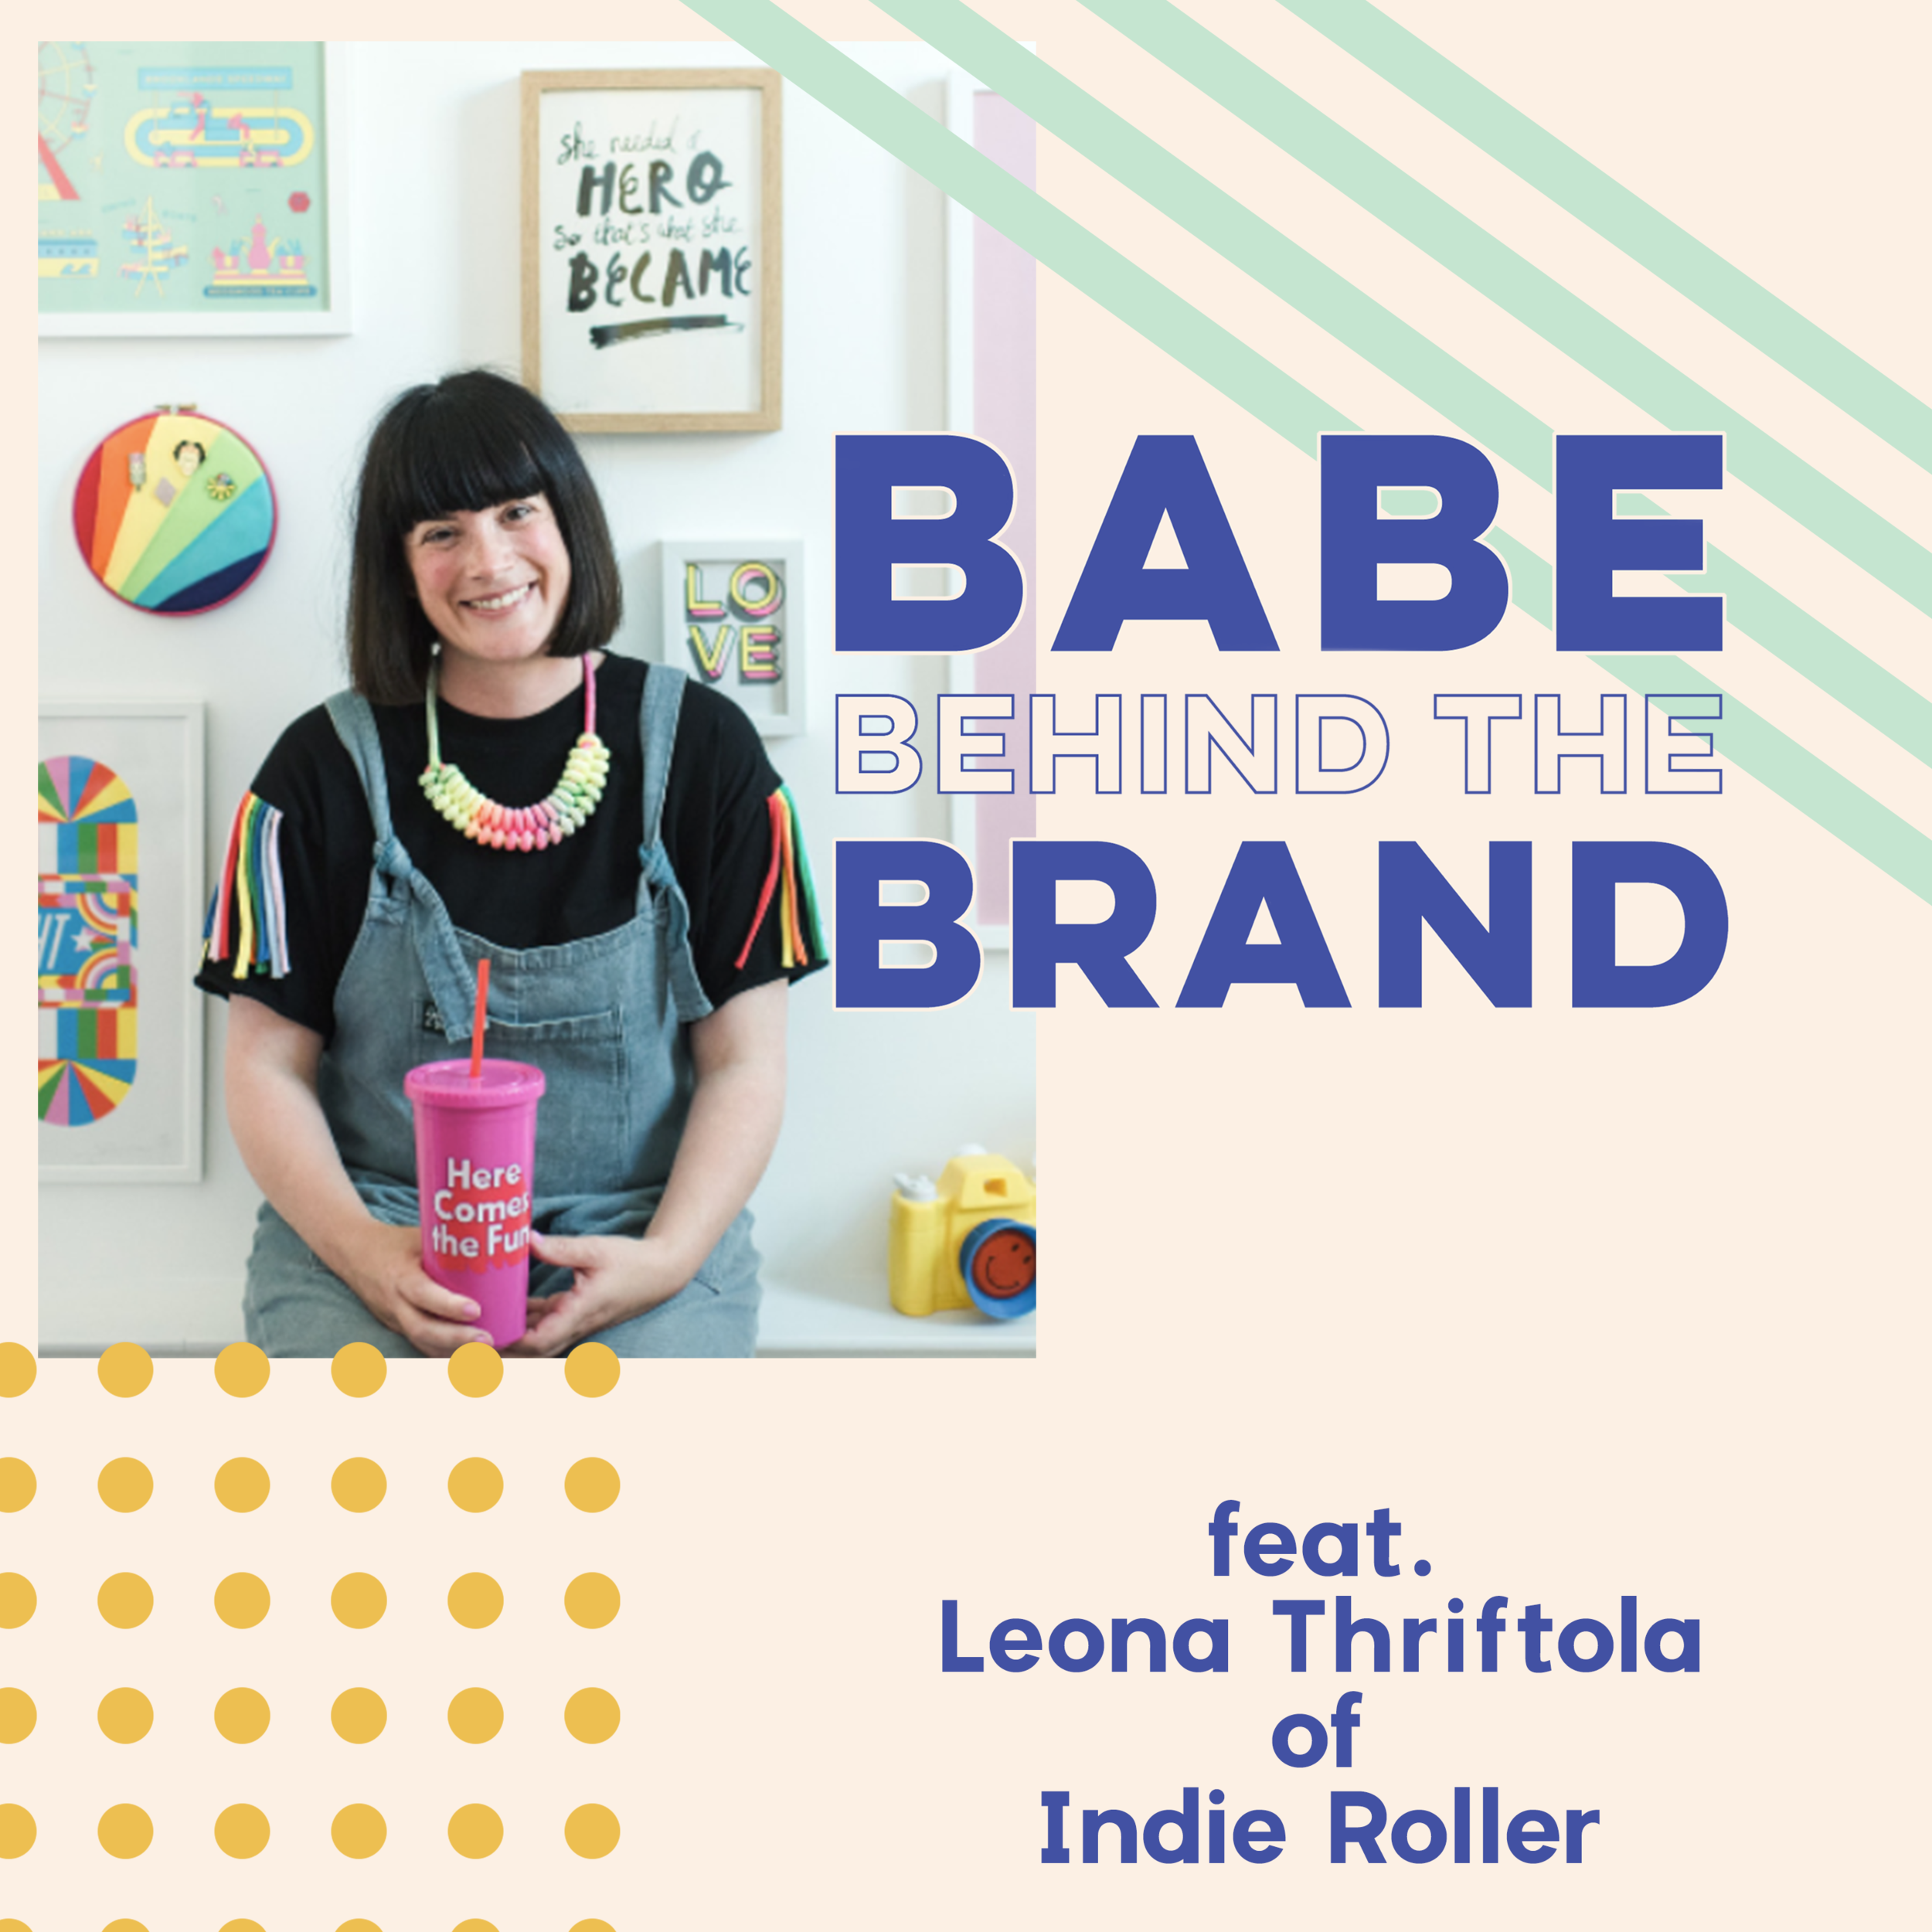 Leona-Thriftola-Babe-Behind-The-Brand-Babe-Crafted.png